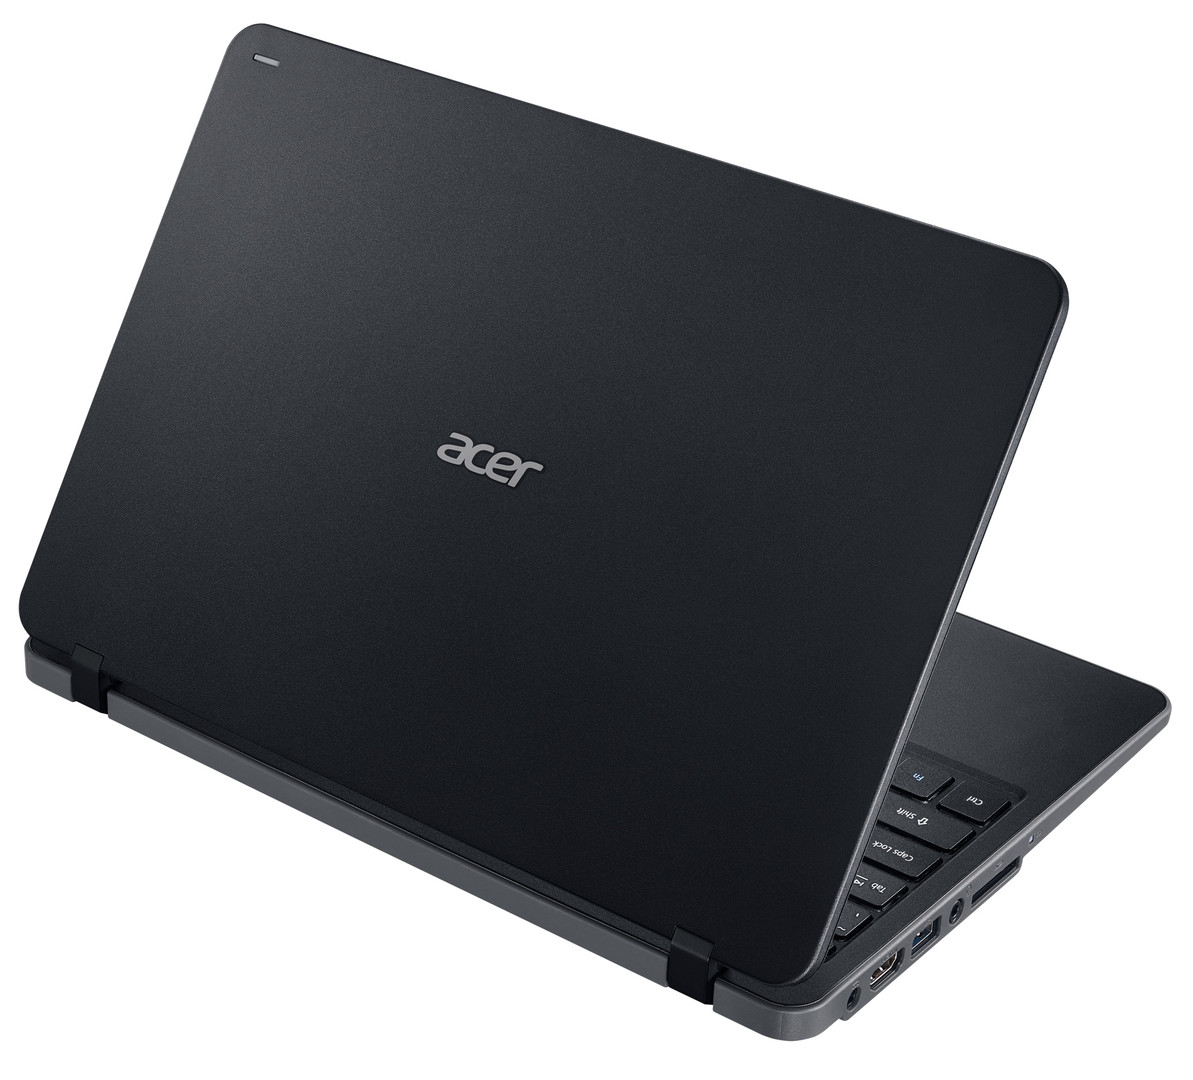 Acer TravelMate B117-MP Intel USB 3.0 Drivers for PC